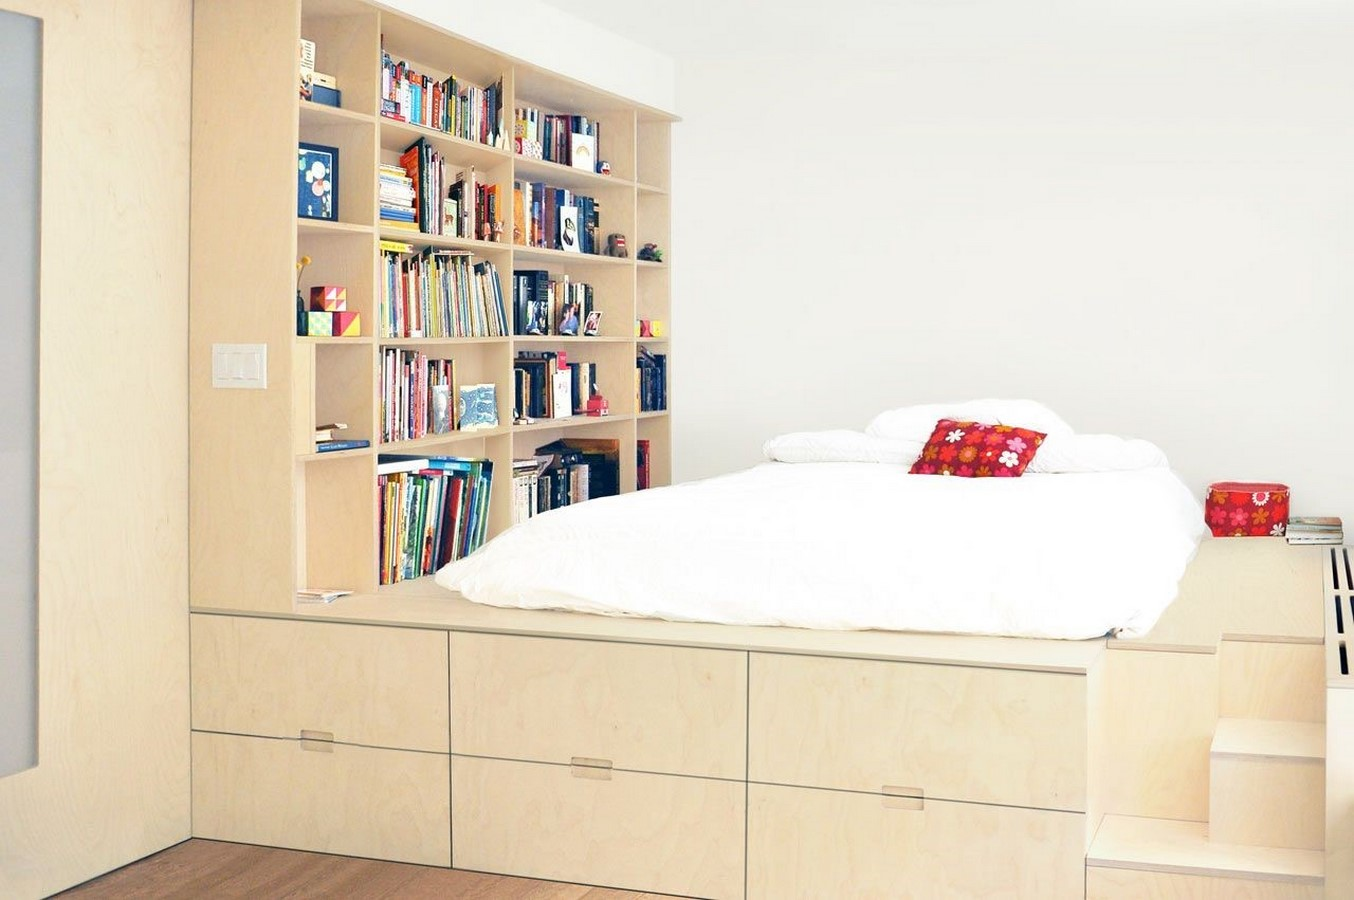 Can luxury fit into a 600sq.ft apartment - Sheet5